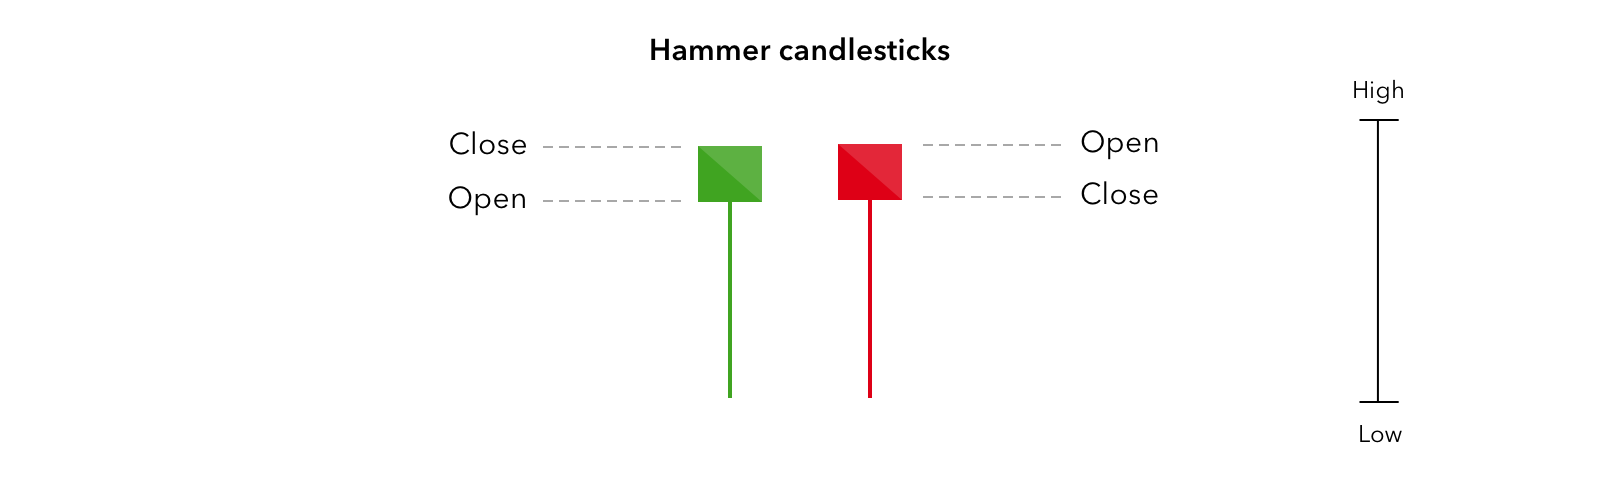 Candlestick Trading Explained | What is a Candlestick? | IG UK